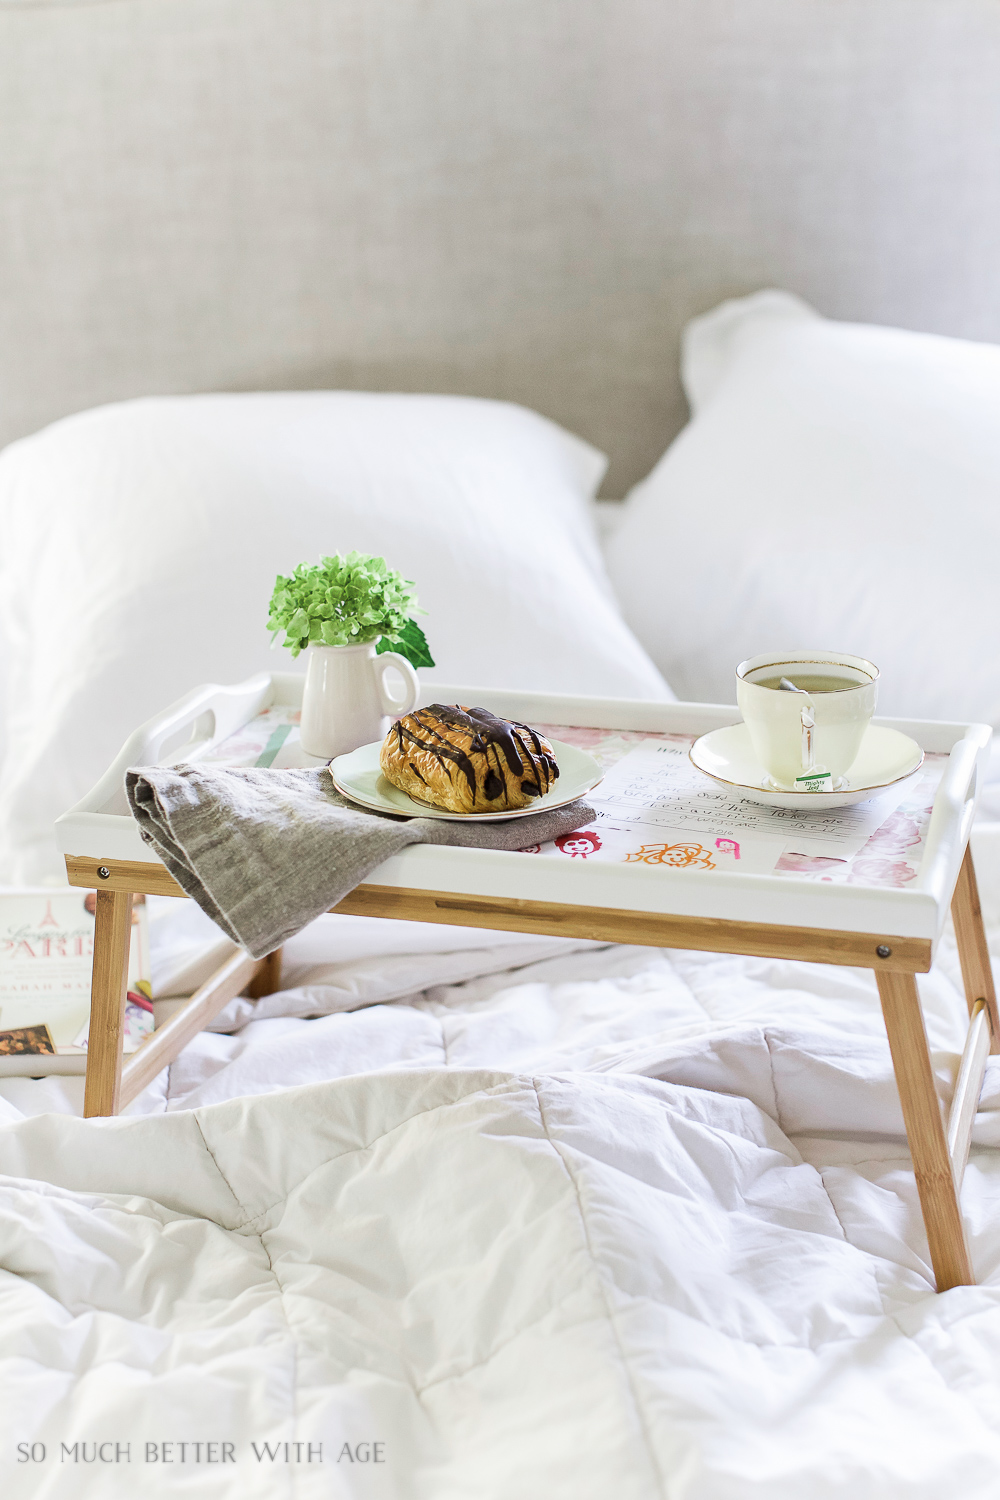 Mother's Day breakfast-in-bed tray with decoupaged kids' art / tray on bed with flowers tea and croissant - So Much Better With Age